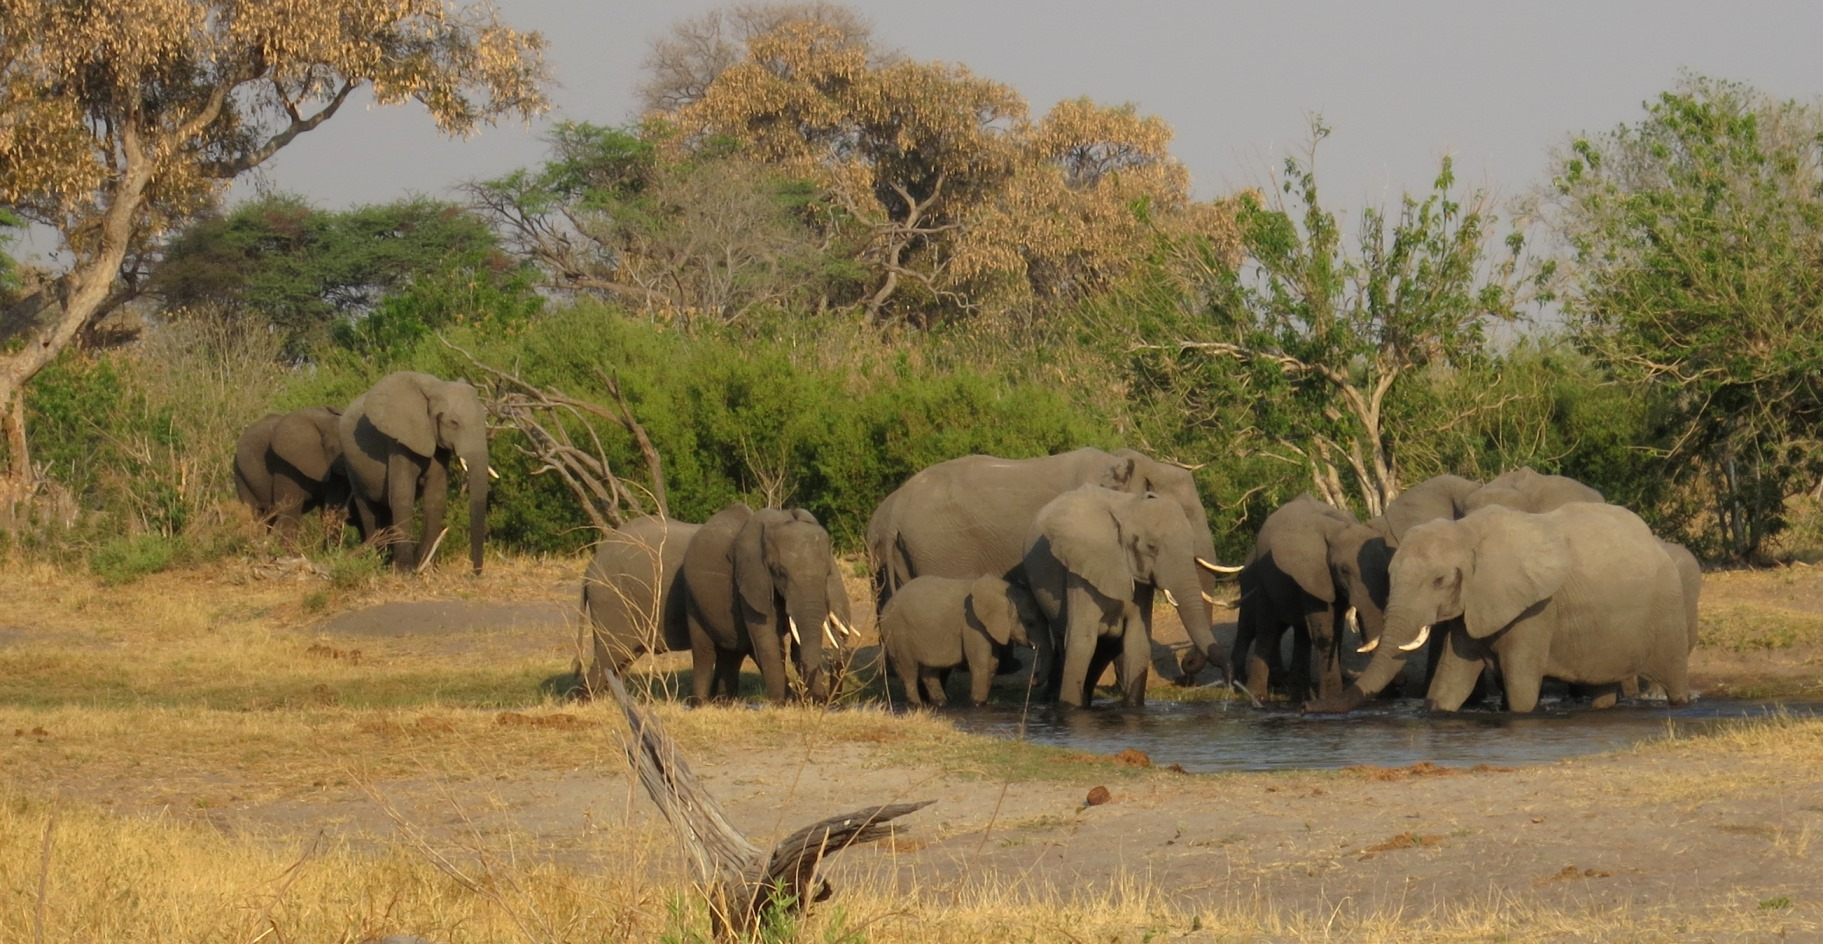 A herd of savanna elephants at a water hole in Chobe National Park, Botswana.